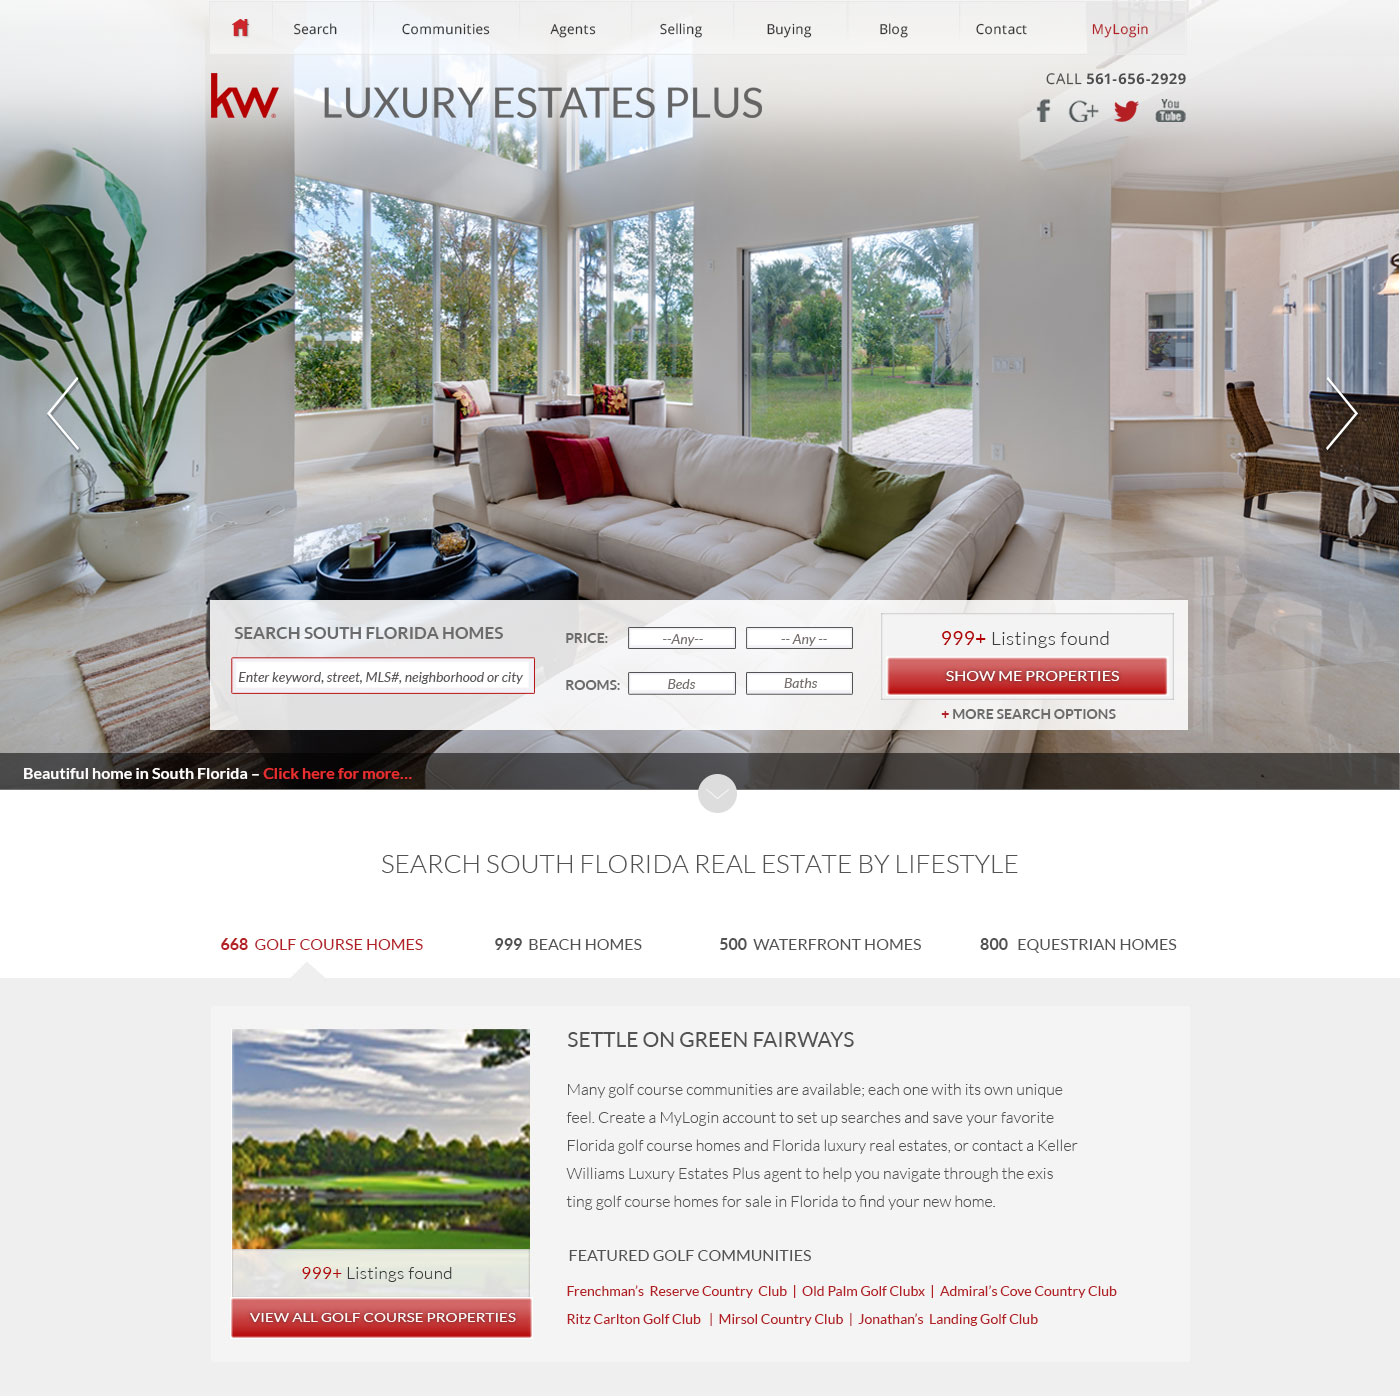 KW: Luxury Estates Plus